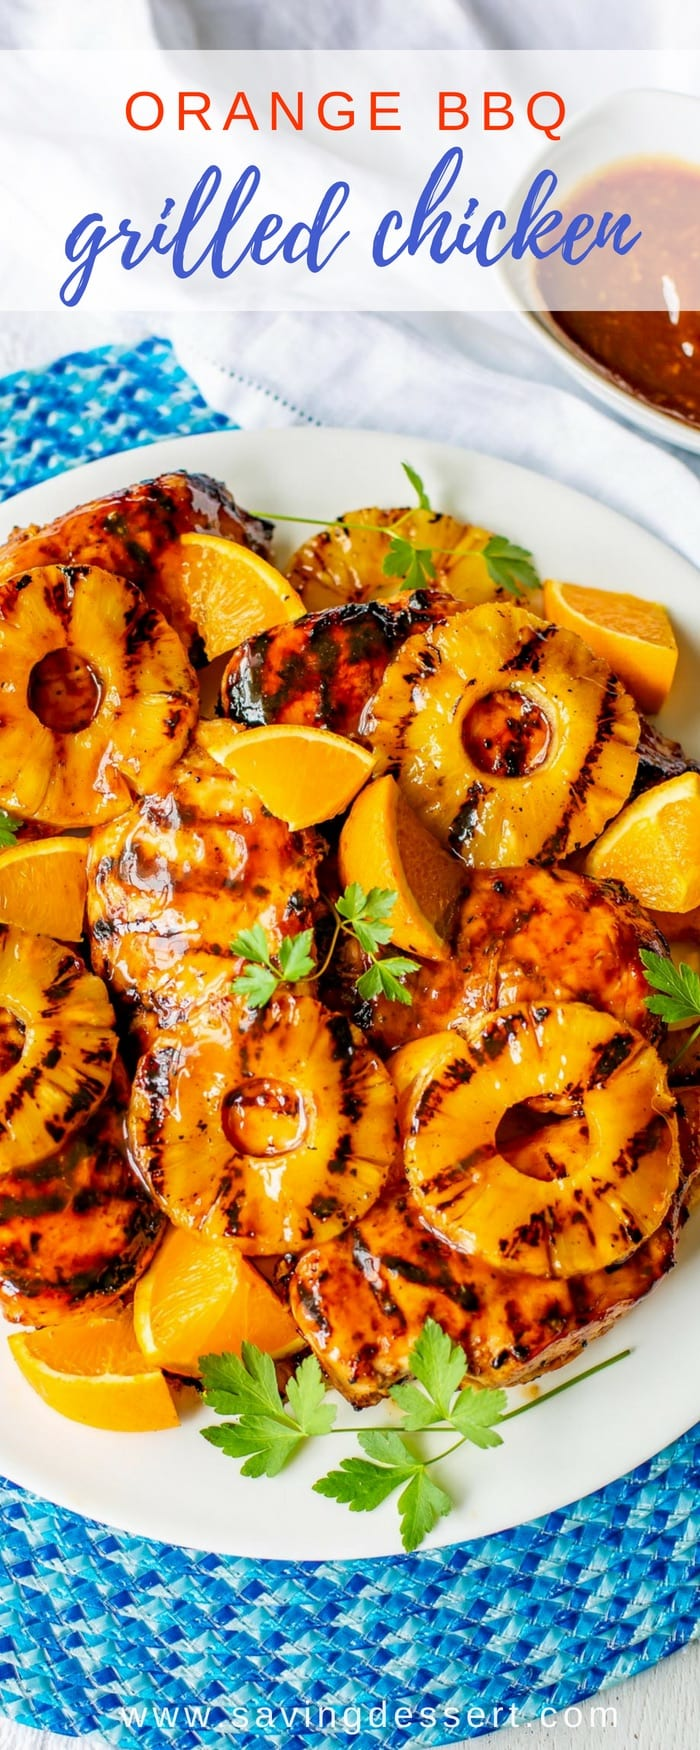 Fresh off the grill!  This Orange Barbecue Grilled Chicken Recipe is deliciously different and a breeze to throw together in a flash. We love the bright orange flavor and the hint of ginger and pineapple juice in the sauce. It's lip smacking good! #savingroomfordessert #grilled #chicken #grilledchicken #orangechicken #bestgrilledchicken #orangebarbecue #bbqchicken